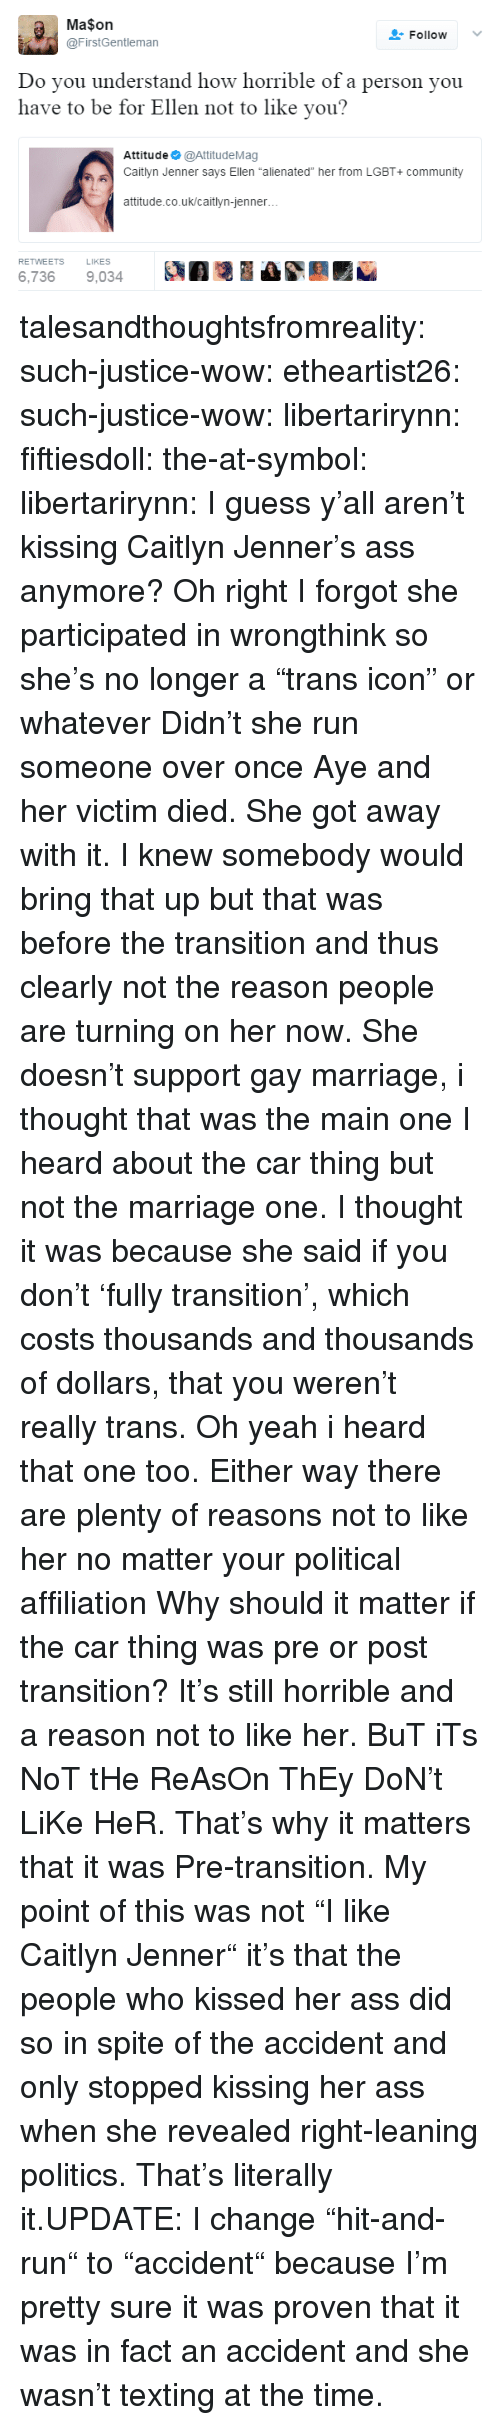 """Gay Marriage: Ma$on  @FirstGentleman  FollowV  Do vou understand how horrible of a person you  have to be for Ellen not to like you?  Attitude @AttitudeMag  Caitlyn Jenner says Ellen """"alienated"""" her from LGBT+ community  attitude.co.uk/caitlyn-jenner  RETWEETS  LIKES  6,7369,034 A talesandthoughtsfromreality:  such-justice-wow:   etheartist26:   such-justice-wow:  libertarirynn:   fiftiesdoll:   the-at-symbol:  libertarirynn:  I guess y'all aren't kissing Caitlyn Jenner's ass anymore? Oh right I forgot she participated in wrongthink so she's no longer a """"trans icon"""" or whatever  Didn't she run someone over once  Aye and her victim died. She got away with it.    I knew somebody would bring that up but that was before the transition and thus clearly not the reason people are turning on her now.   She doesn't support gay marriage, i thought that was the main one   I heard about the car thing but not the marriage one. I thought it was because she said if you don't 'fully transition', which costs thousands and thousands of dollars, that you weren't really trans.   Oh yeah i heard that one too. Either way there are plenty of reasons not to like her no matter your political affiliation    Why should it matter if the car thing was pre or post transition? It's still horrible and a reason not to like her.  BuT iTs NoT tHe ReAsOn ThEy DoN't LiKe HeR. That's why it matters that it was Pre-transition. My point of this was not """"I like Caitlyn Jenner"""" it's that the people who kissed her ass did so in spite of the accident and only stopped kissing her ass when she revealed right-leaning politics. That's literally it.UPDATE: I change """"hit-and-run"""" to """"accident"""" because I'm pretty sure it was proven that it was in fact an accident and she wasn't texting at the time."""